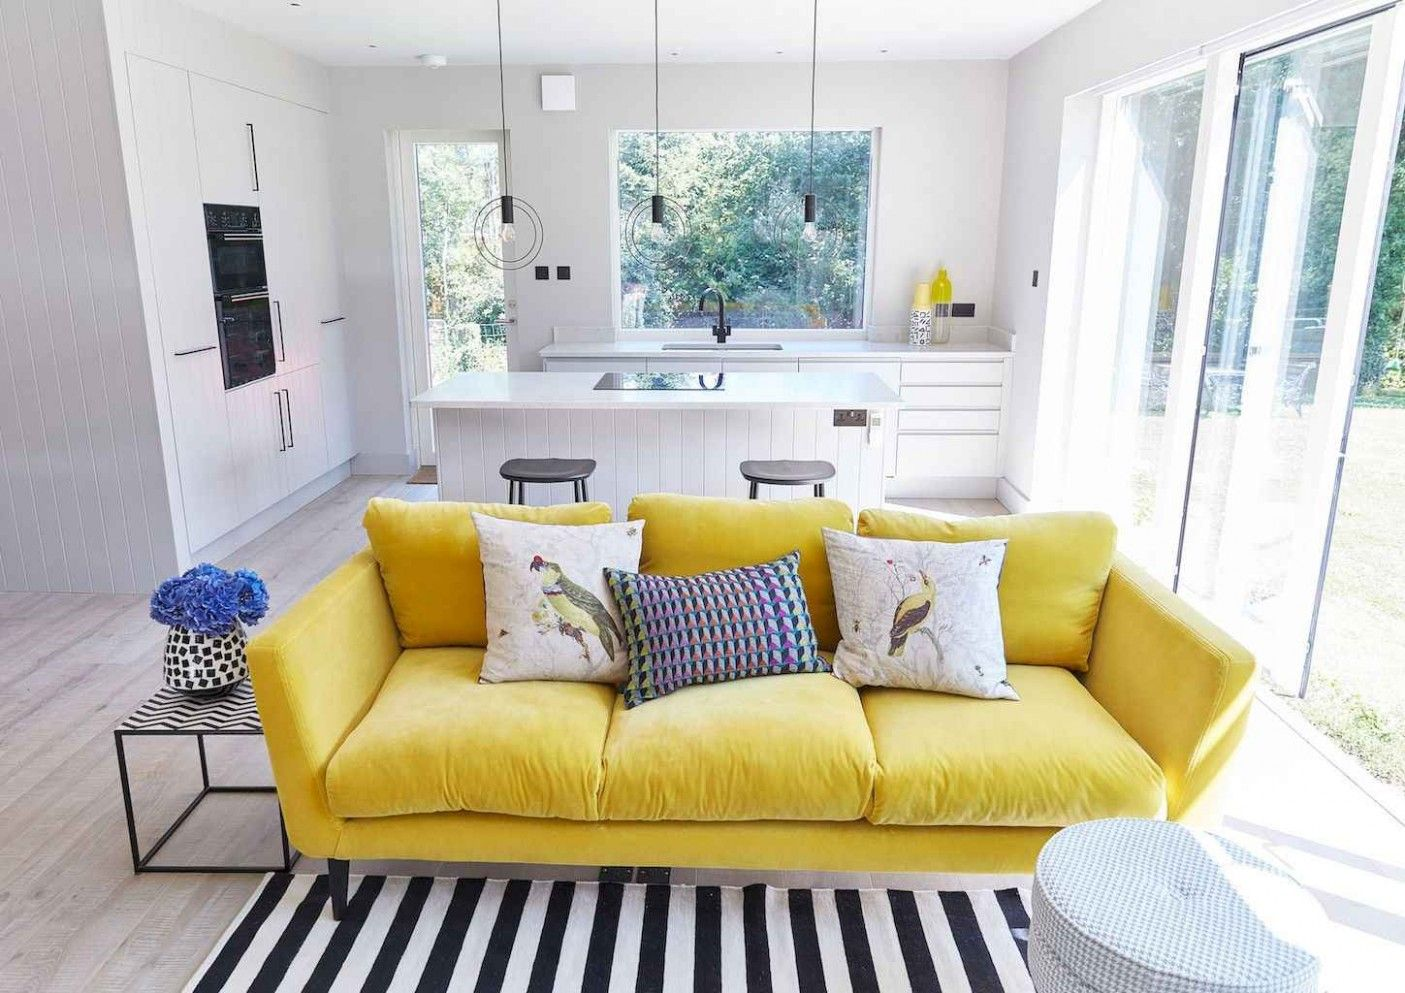 Simple Guidance For You In Living Room Ideas Yellow Sofa Yellow Decor Living Room Small Living Room Design Living Room Sofa Living room ideas yellow